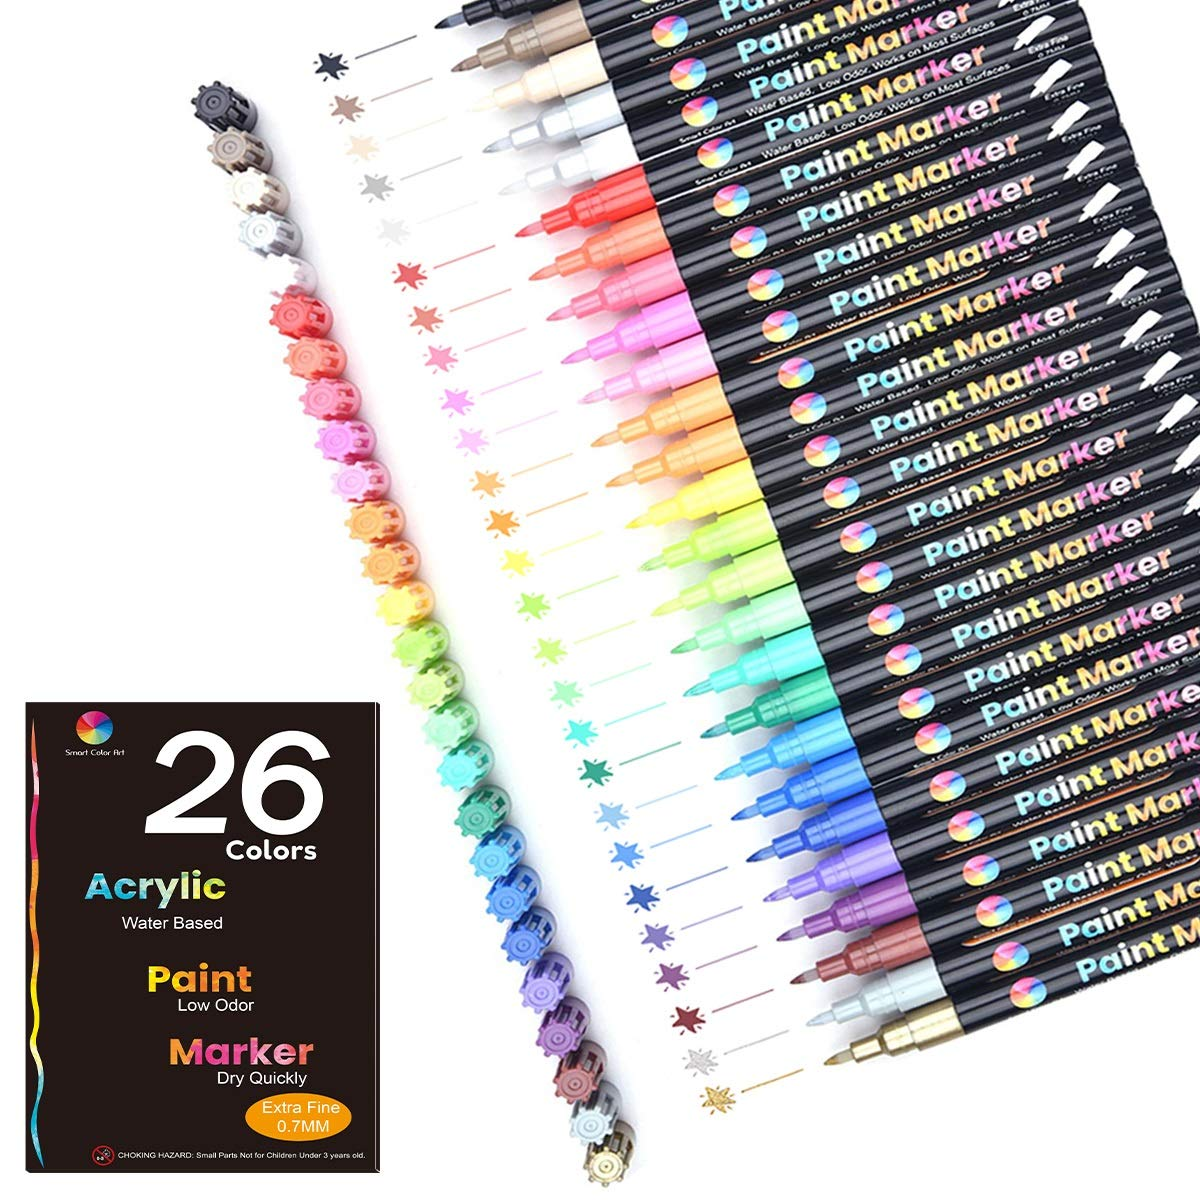 Acrylic Paint Markers,26 Colors Extra Fine Point Acrylic Paint Pens Set by Smart Color Art,Permanent Water Based, Great for Rock, Wood, Fabric, Glass, Metal, Ceramic, DIY Crafts and Most Surfaces